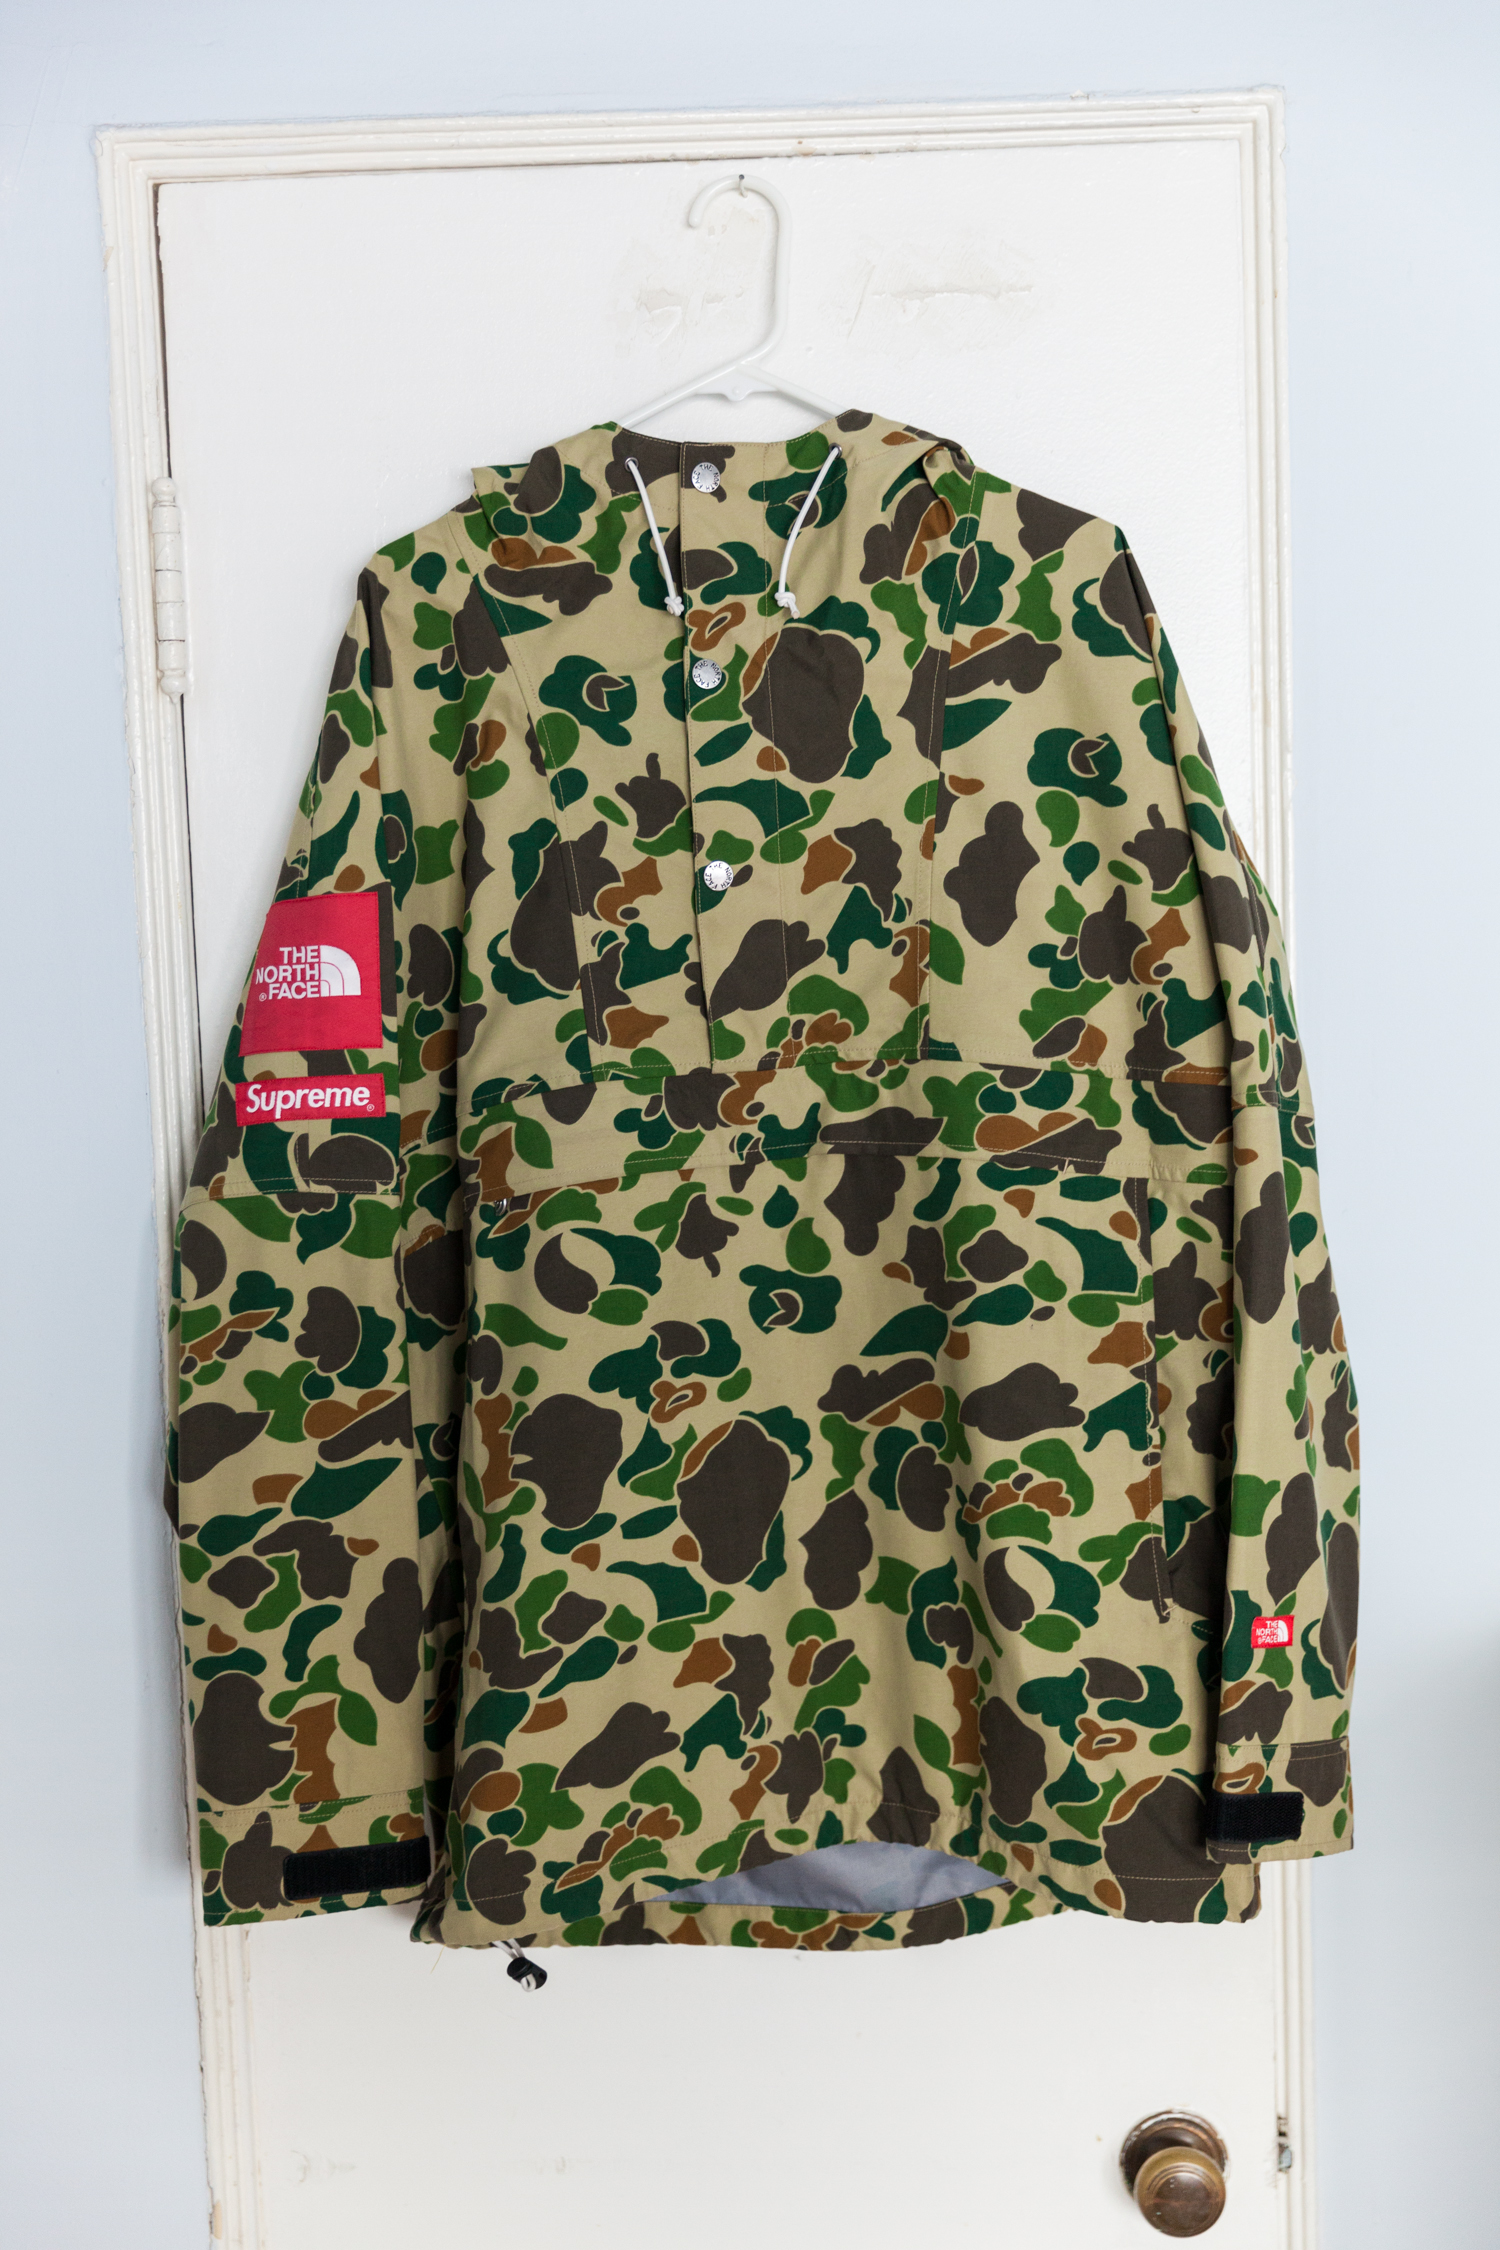 5287896aeab8c Supreme × The North Face ×. S/S 2010 Duck Camo Expedition Pullover Jacket